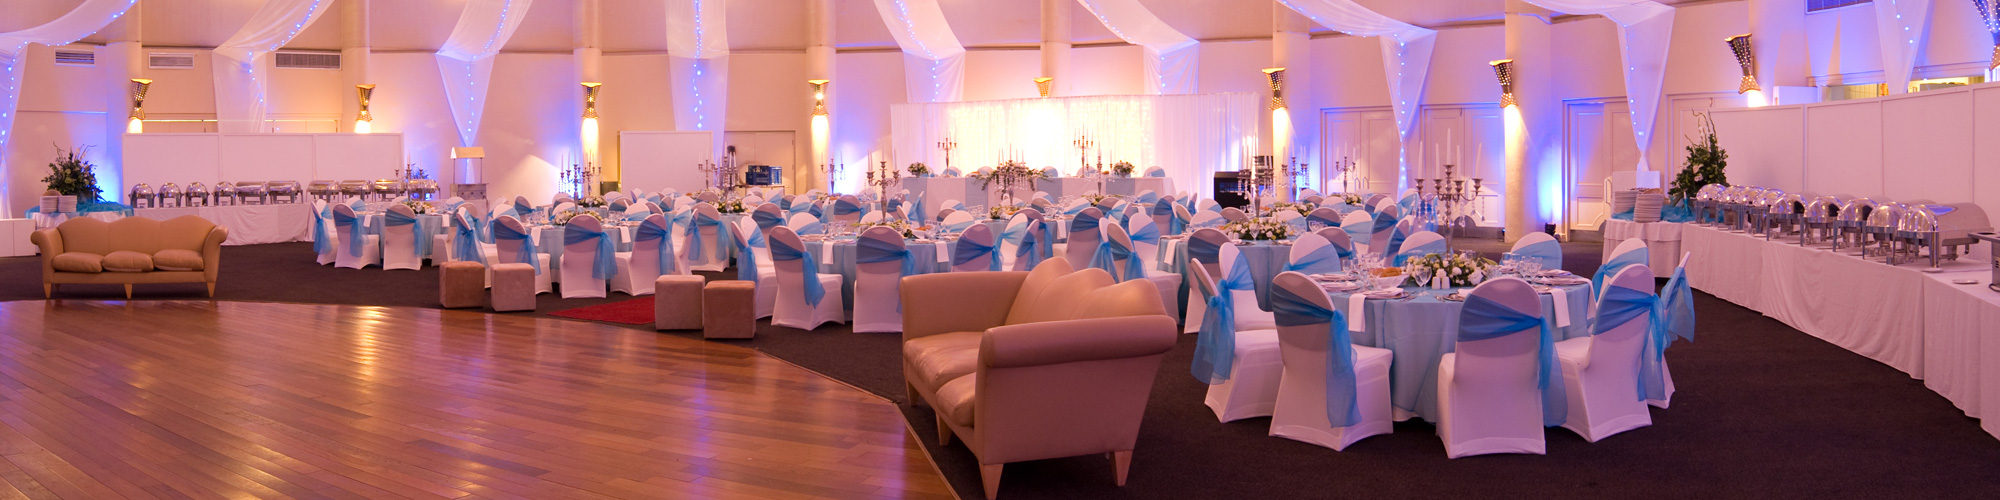 Event Venue, Hall Rentals | Lodi, NJ